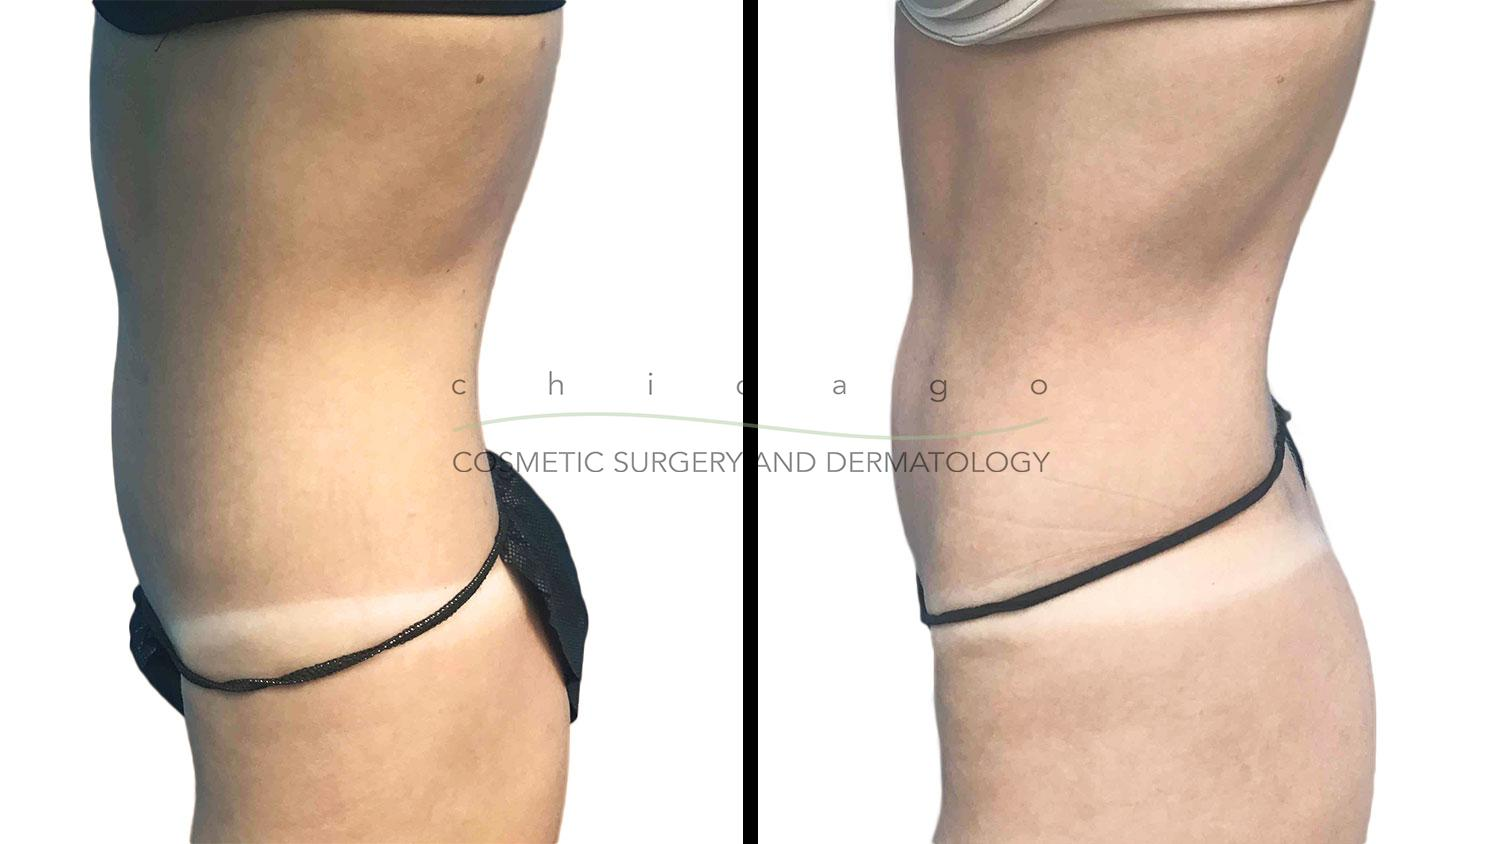 Emsculpt abdomen sculpting before and after Chicago